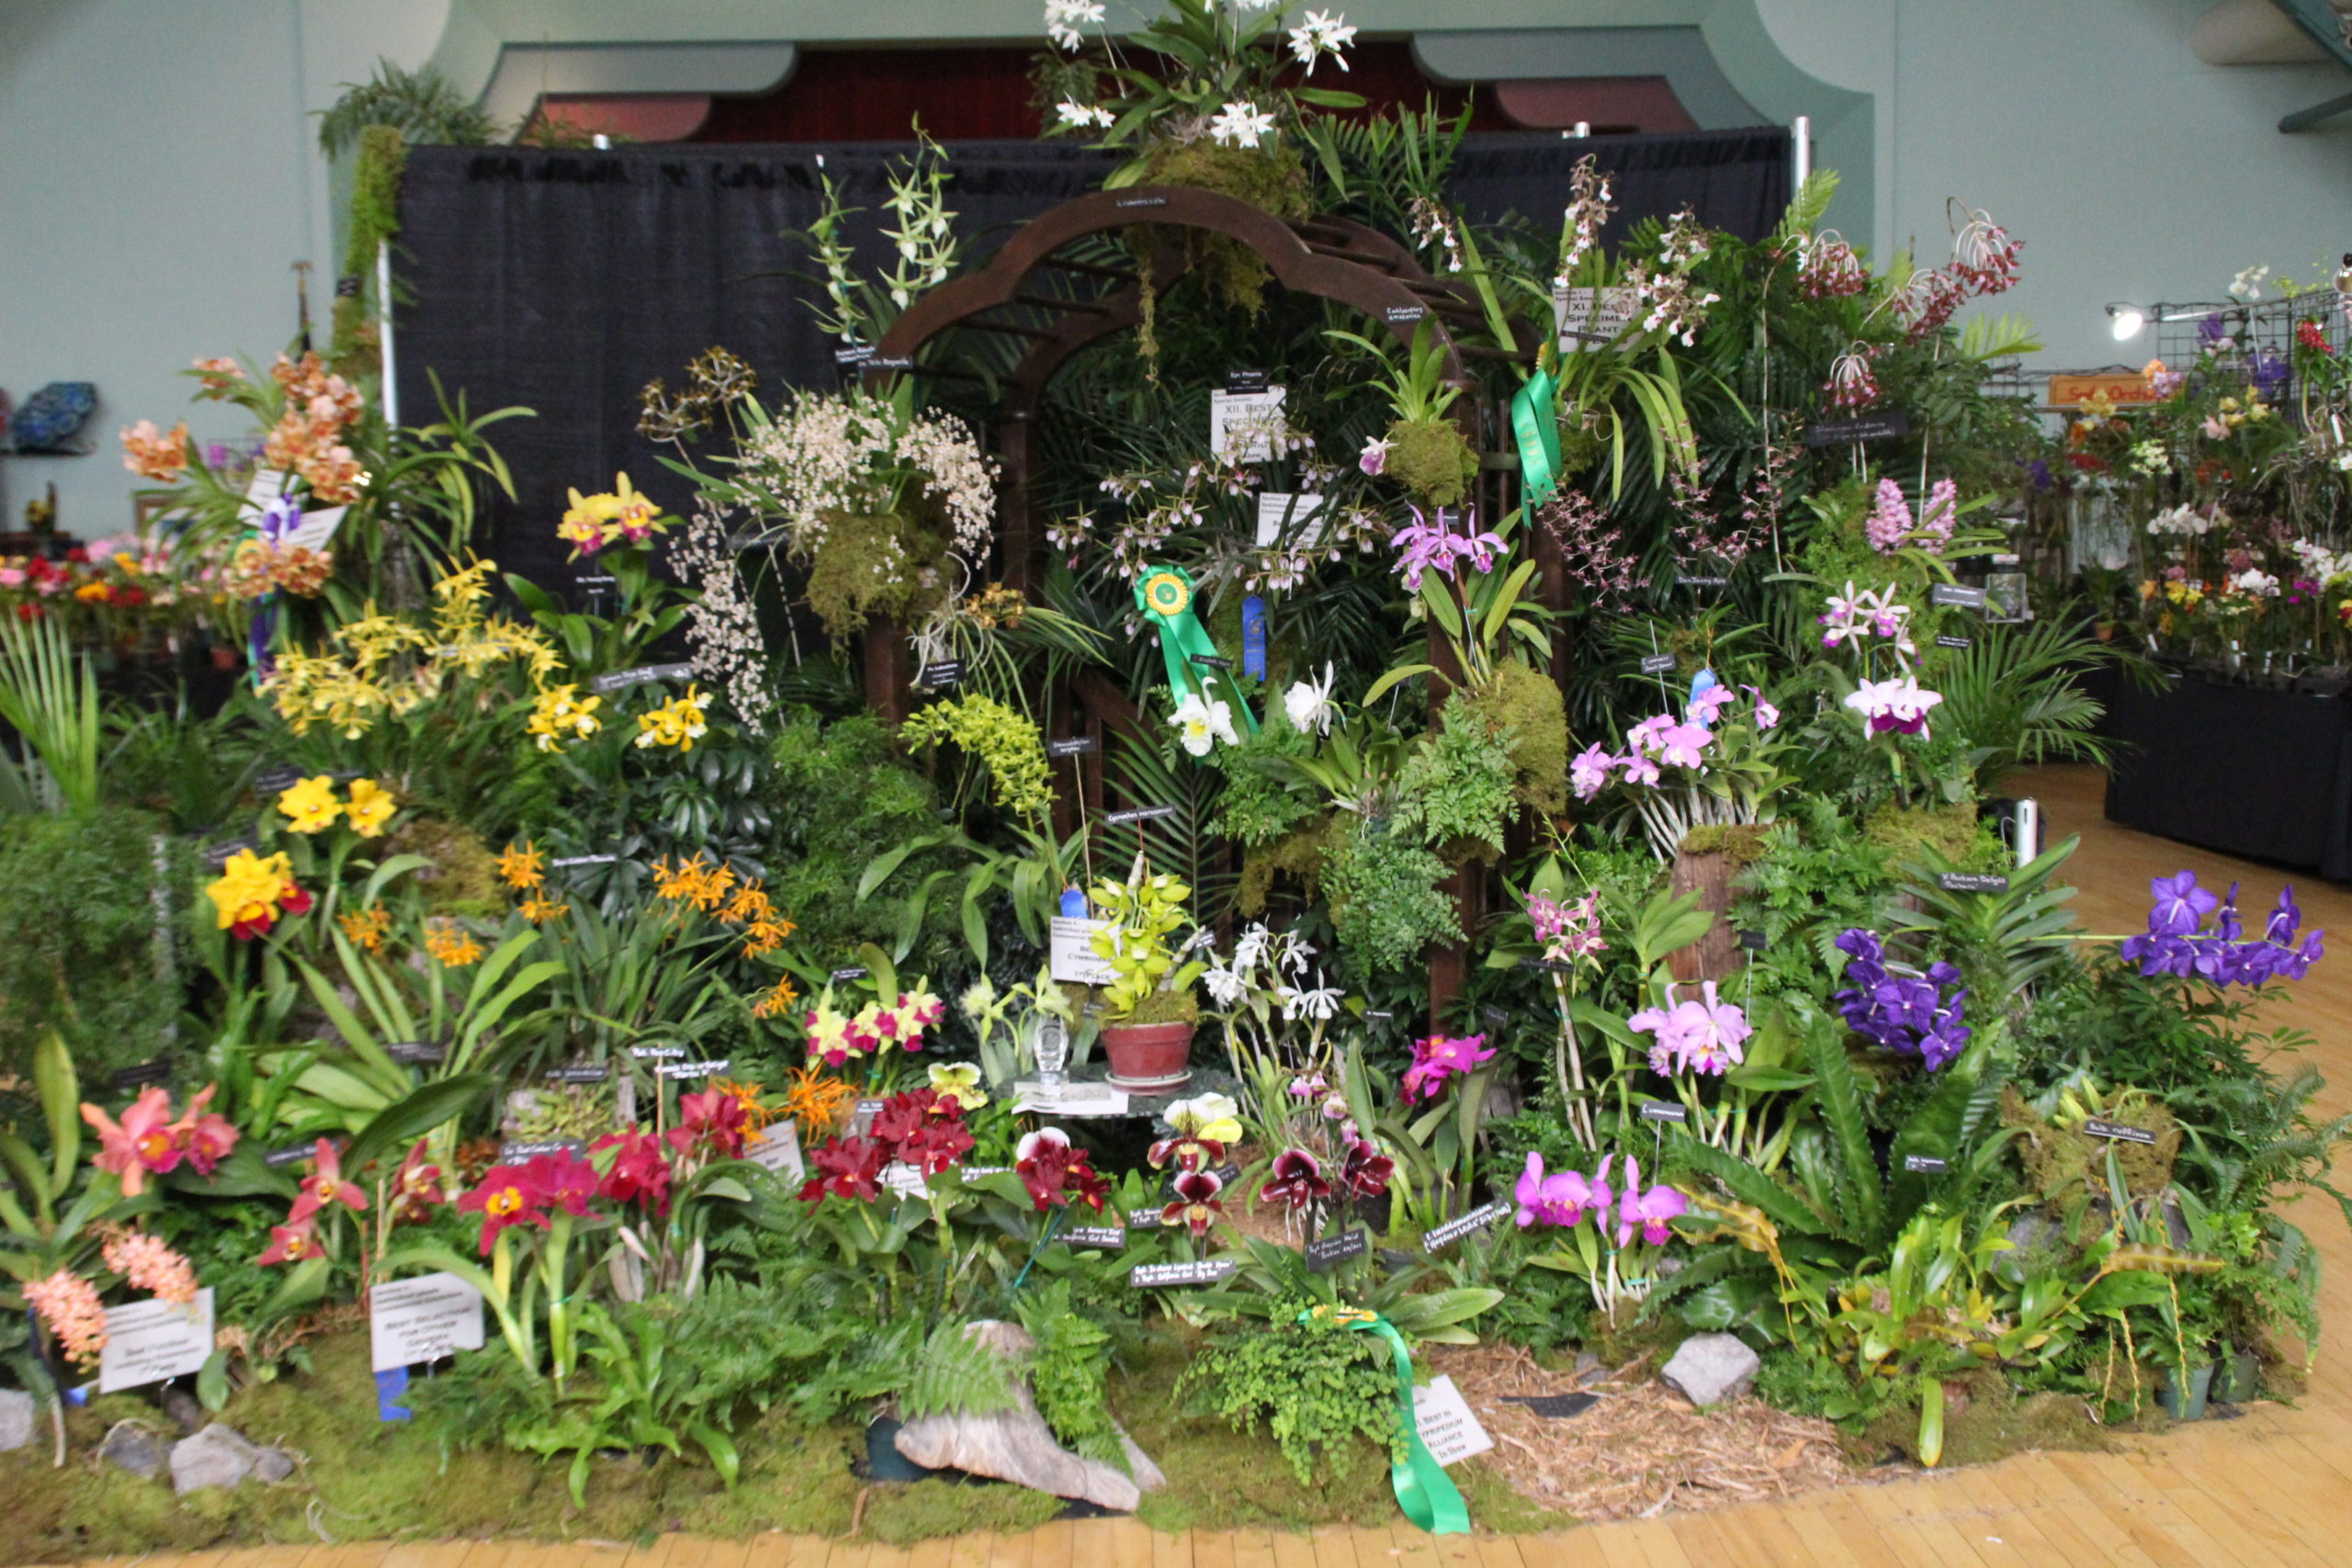 2017 SOS Show AOS Award for Commercial Display